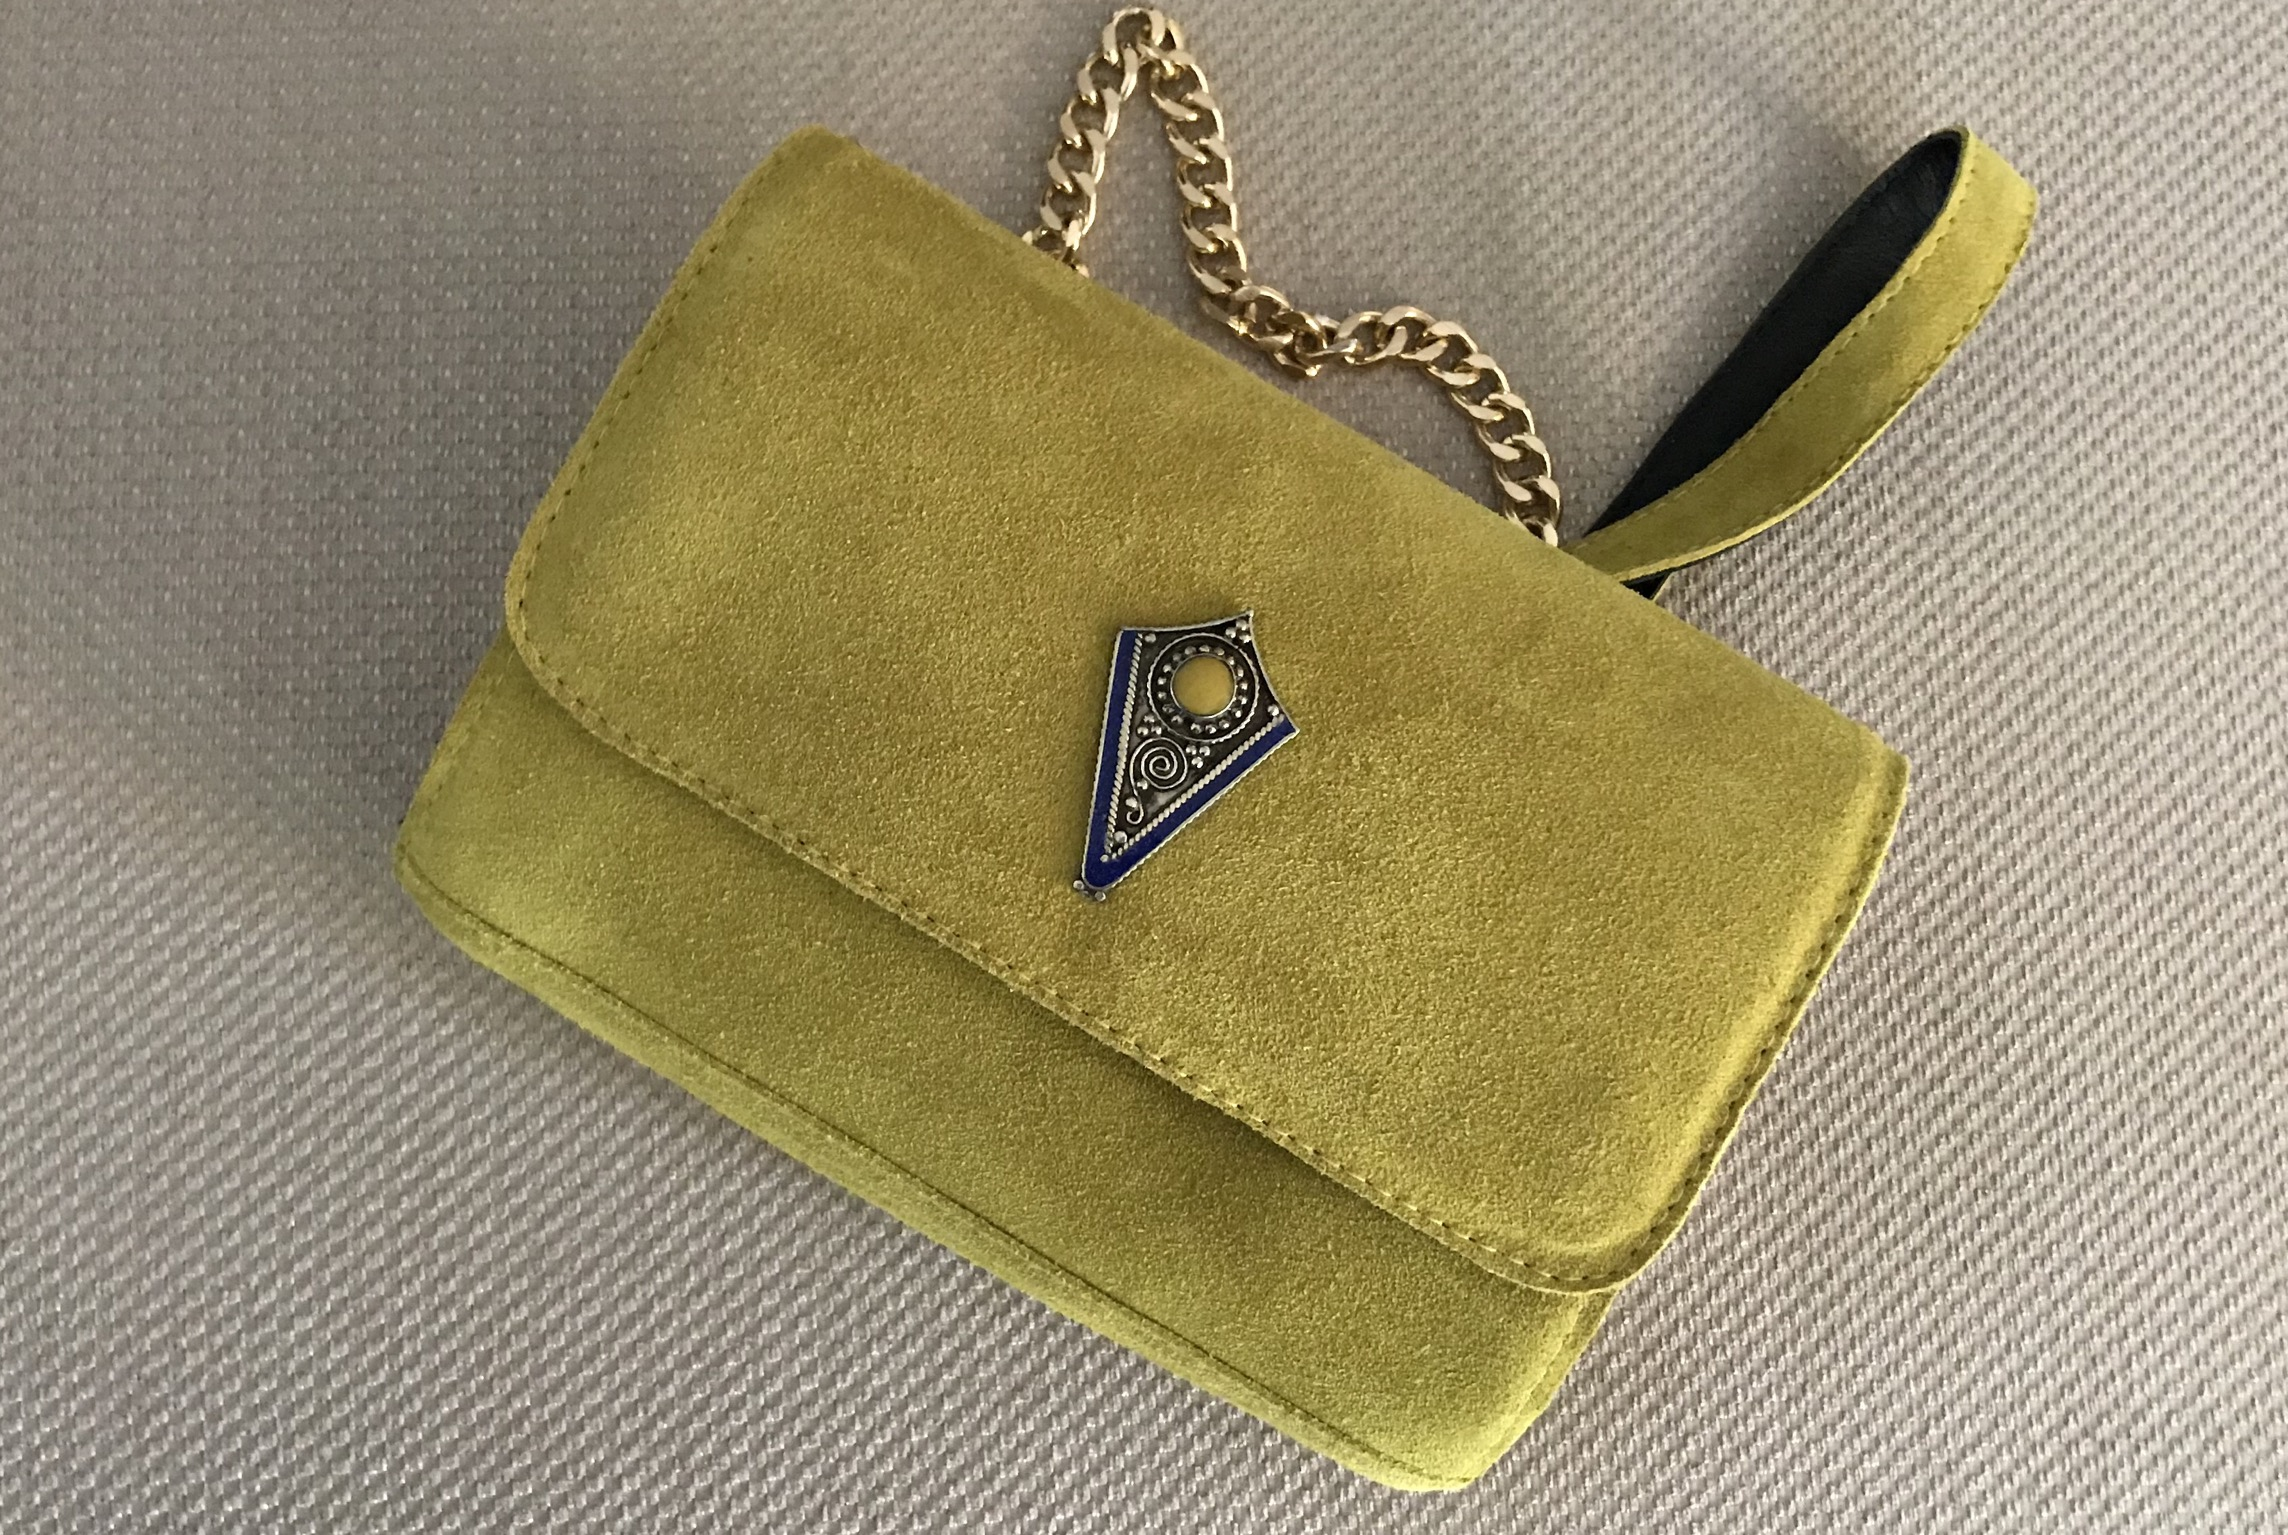 Jewelery bag suede leather yellow